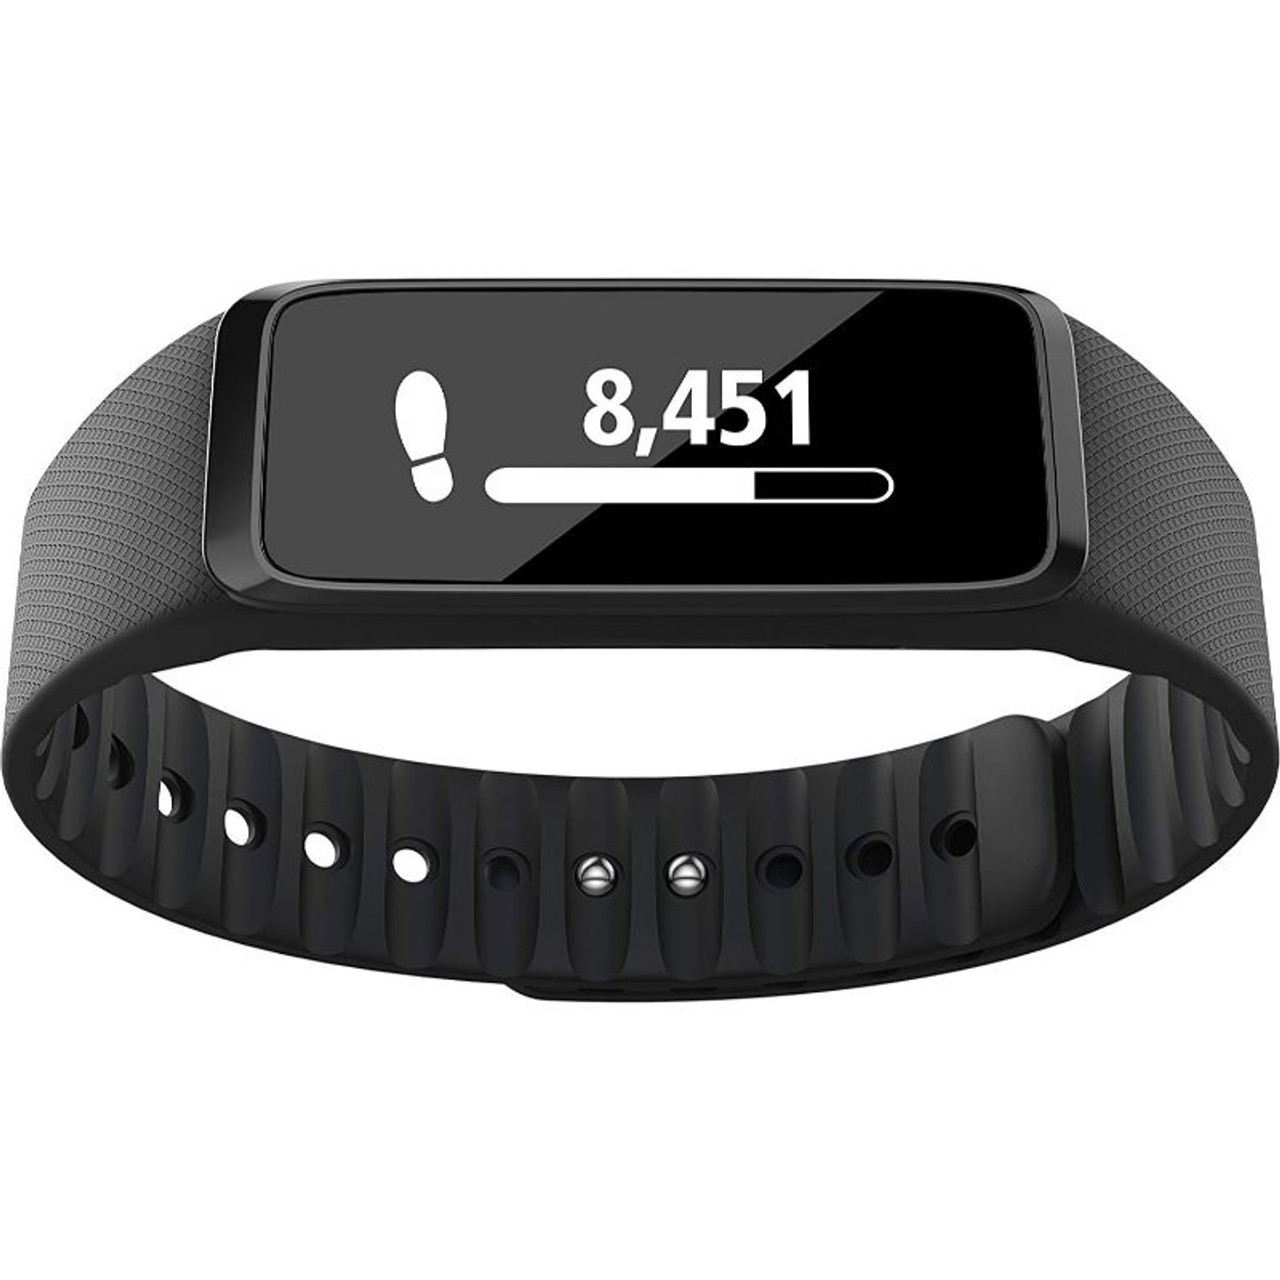 Striiv Fusion Lite Activity Tracking and Caller ID